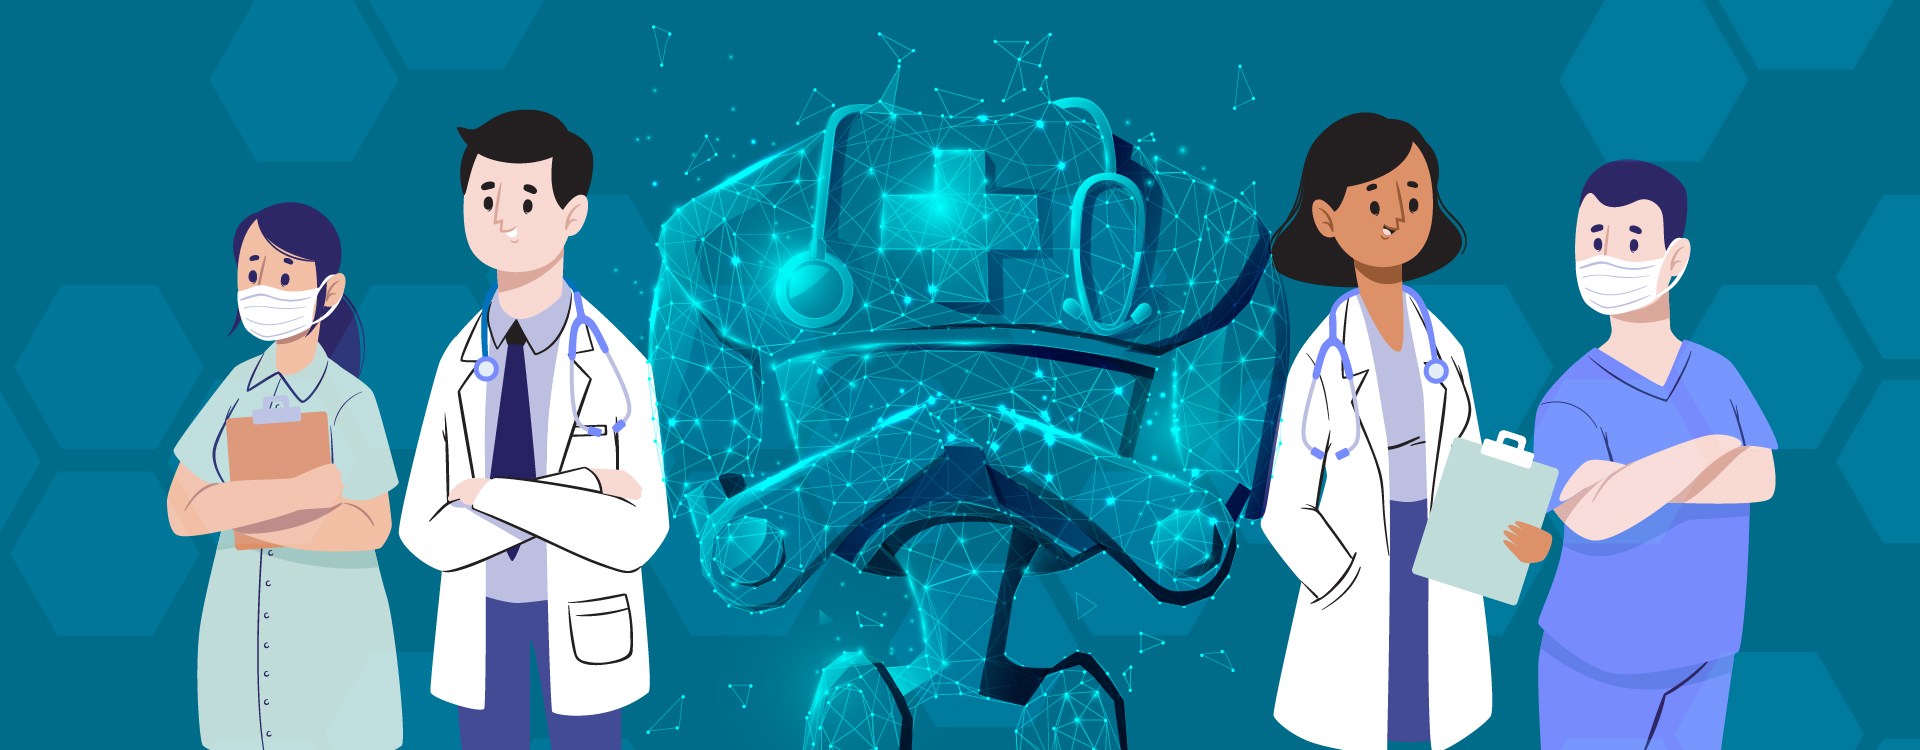 1mg is deploying AI to bring innovations in healthcare.